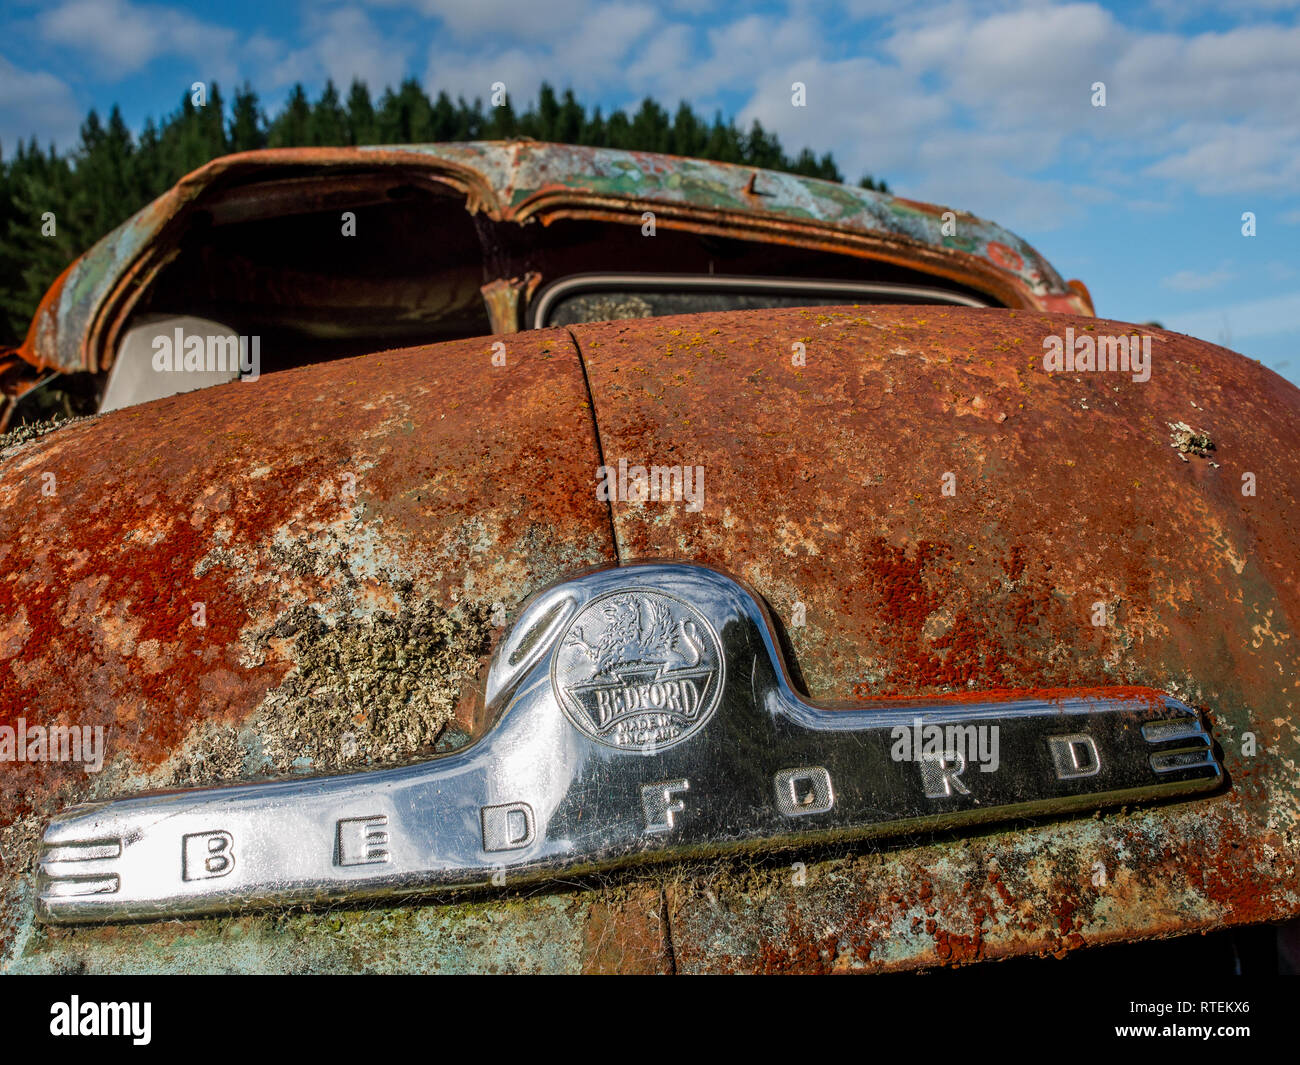 Bedford Vehicle badge on derelict Bedford truck,  abandoned, rusting, with lichen growing, Endeans Mill, Waimiha, Ongarue, King Country, New Zealand - Stock Image